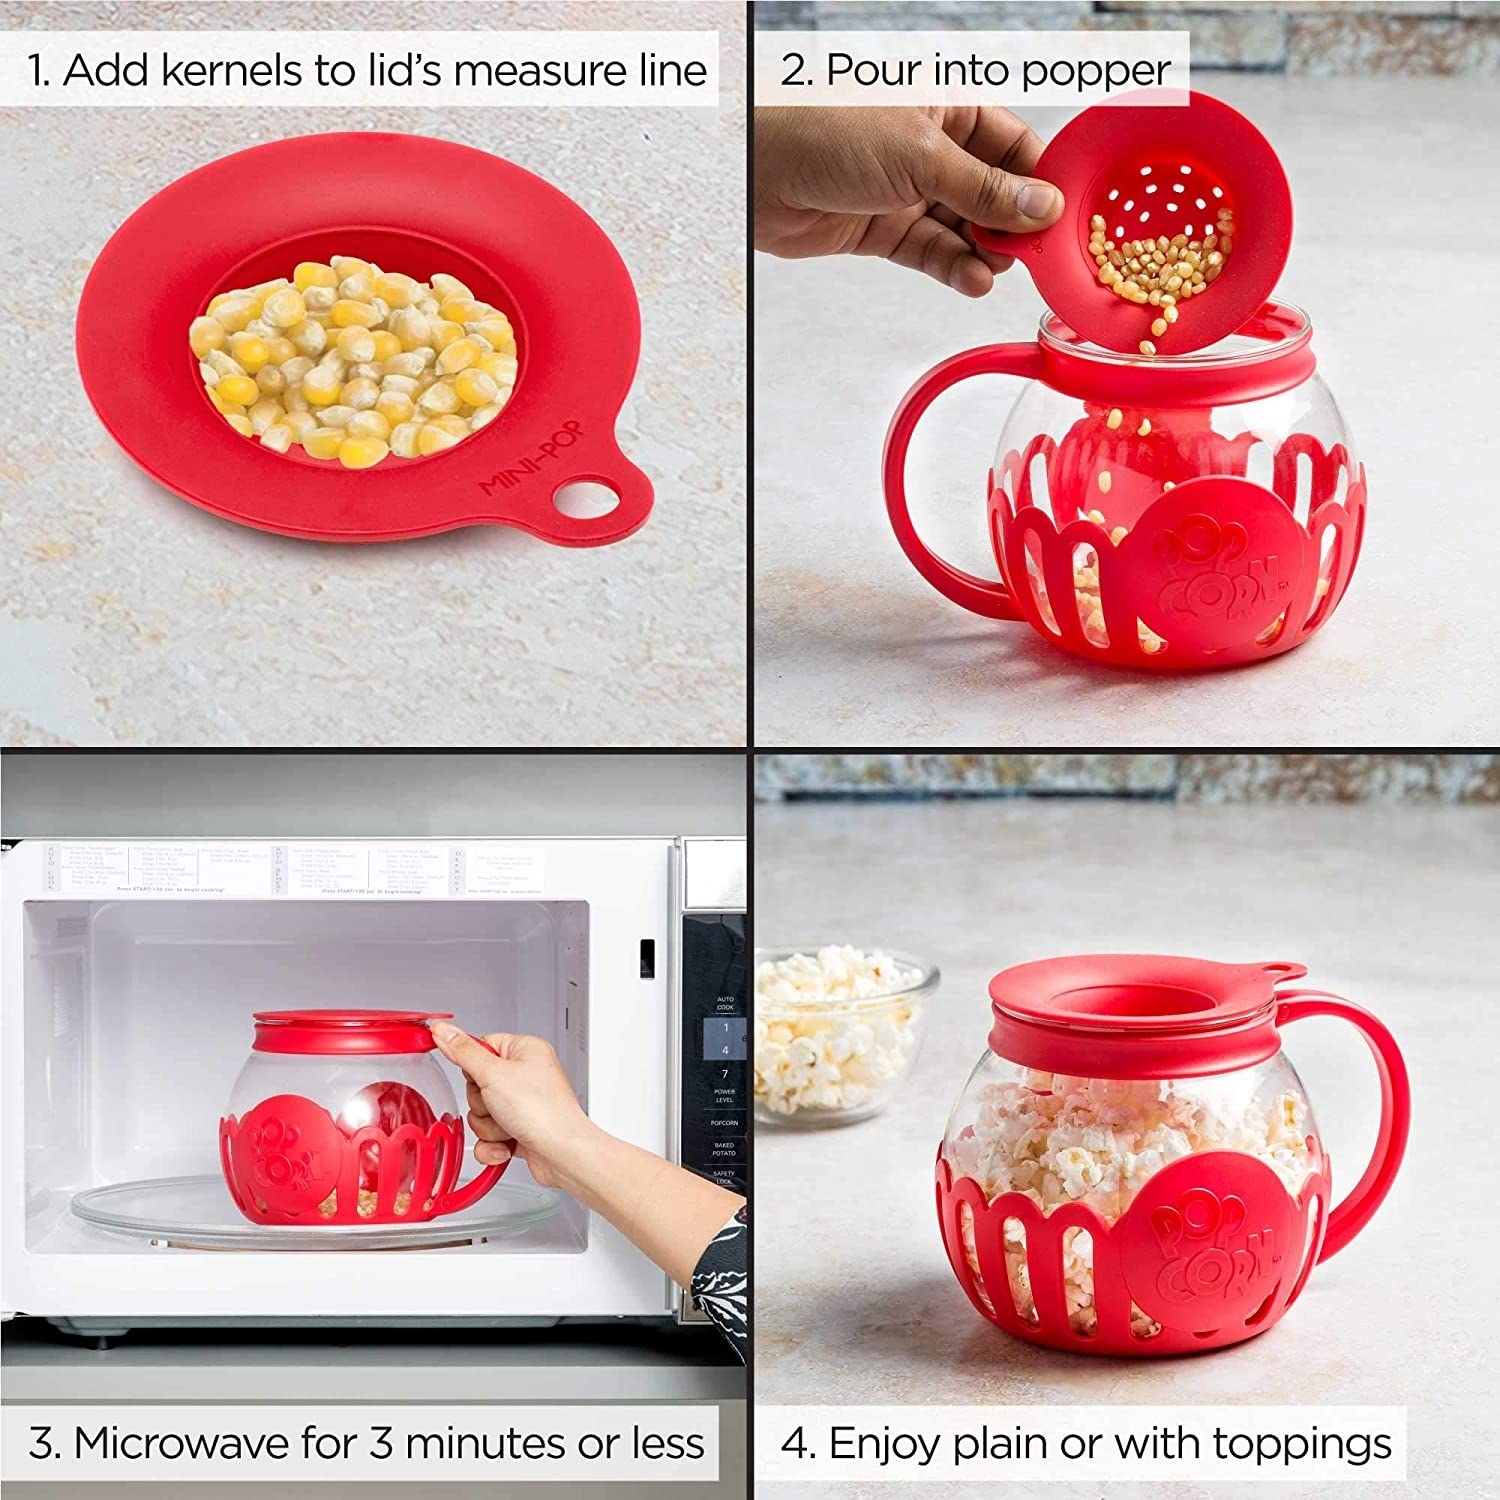 Model demonstrating how to use microwavable popcorn popper